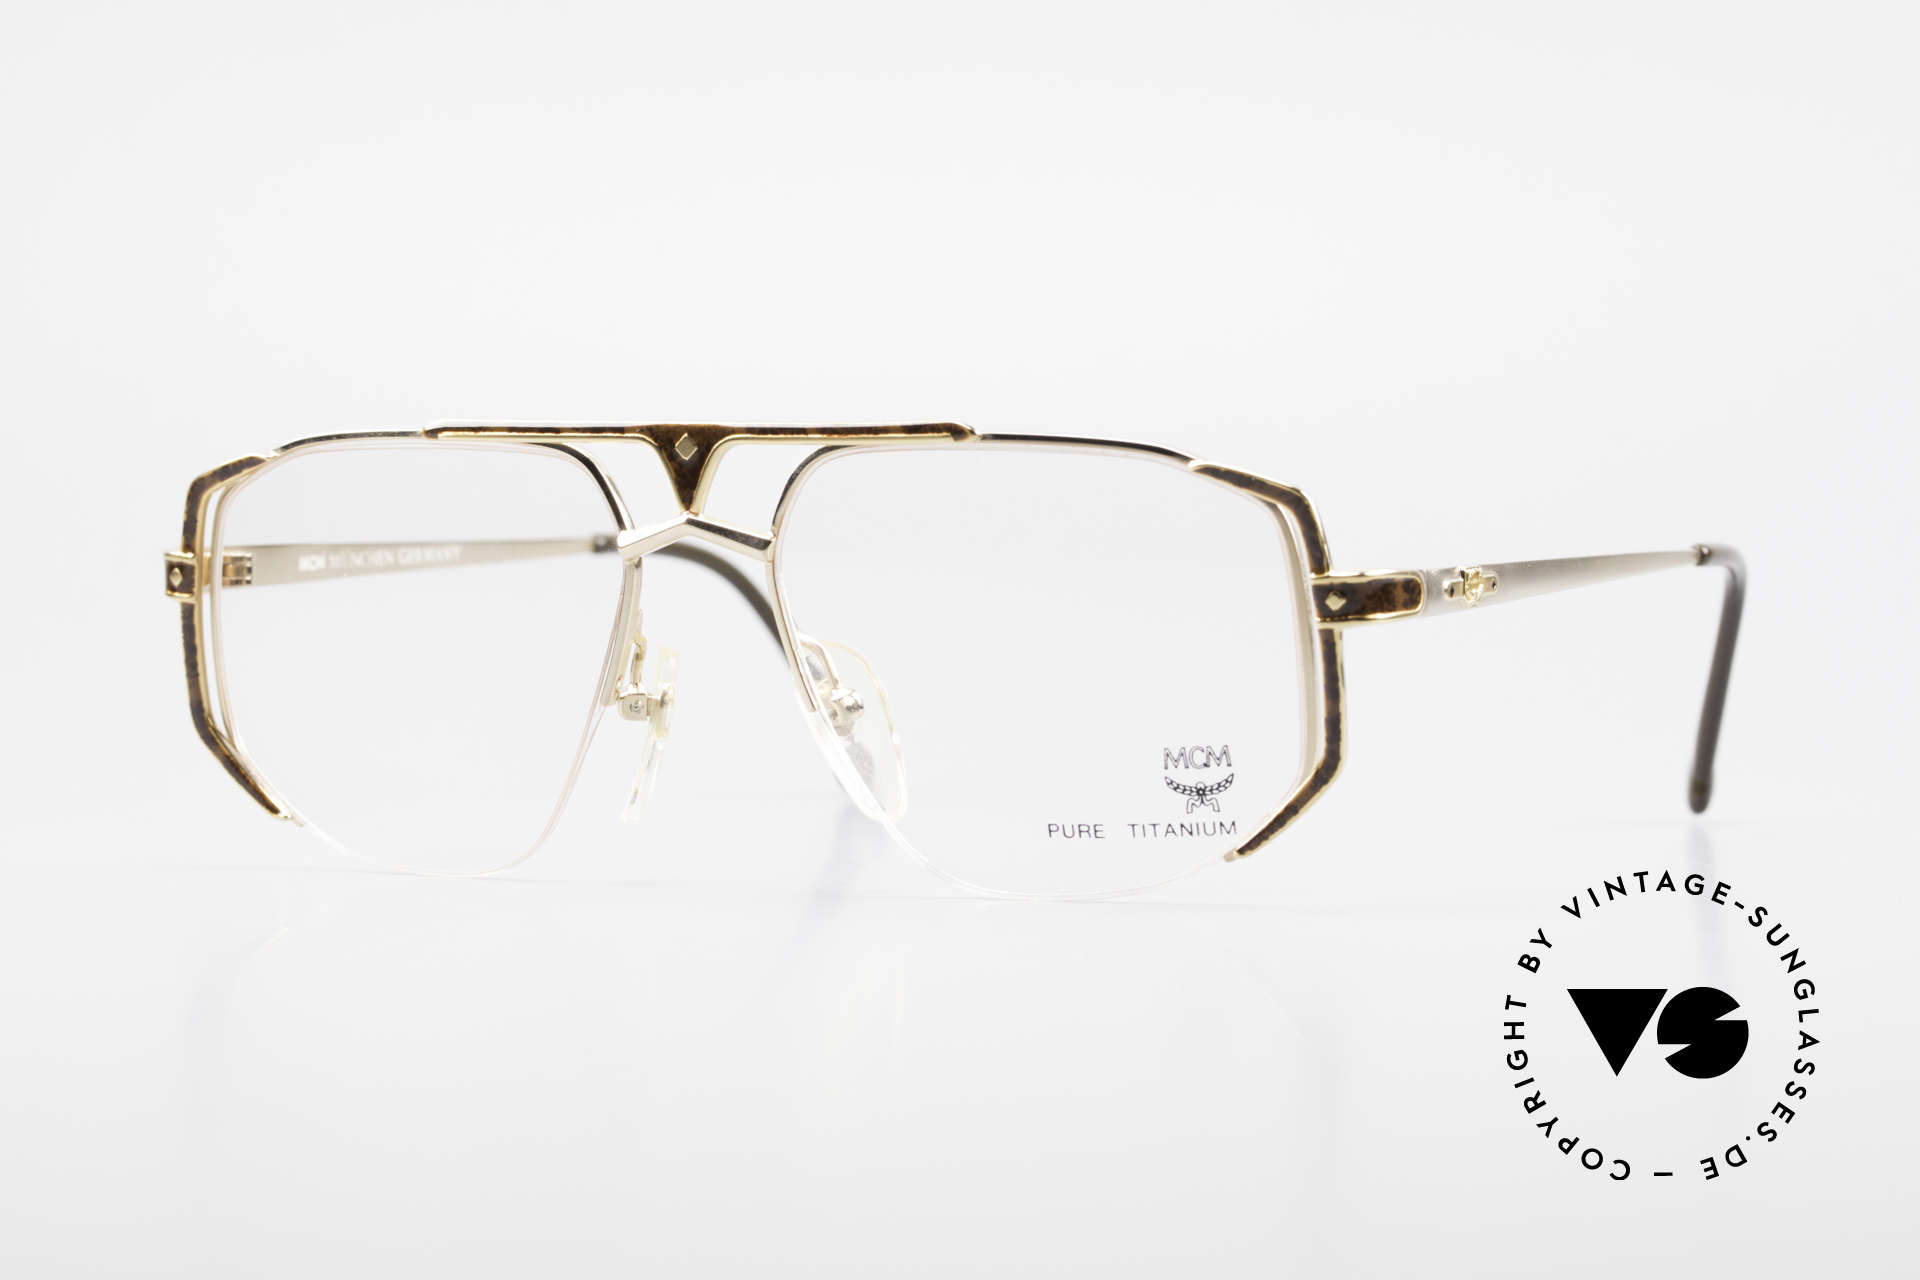 MCM München 5 Titanium Glasses Gold Plated, old designer eyeglasses by MCM from the early 1990's, Made for Men